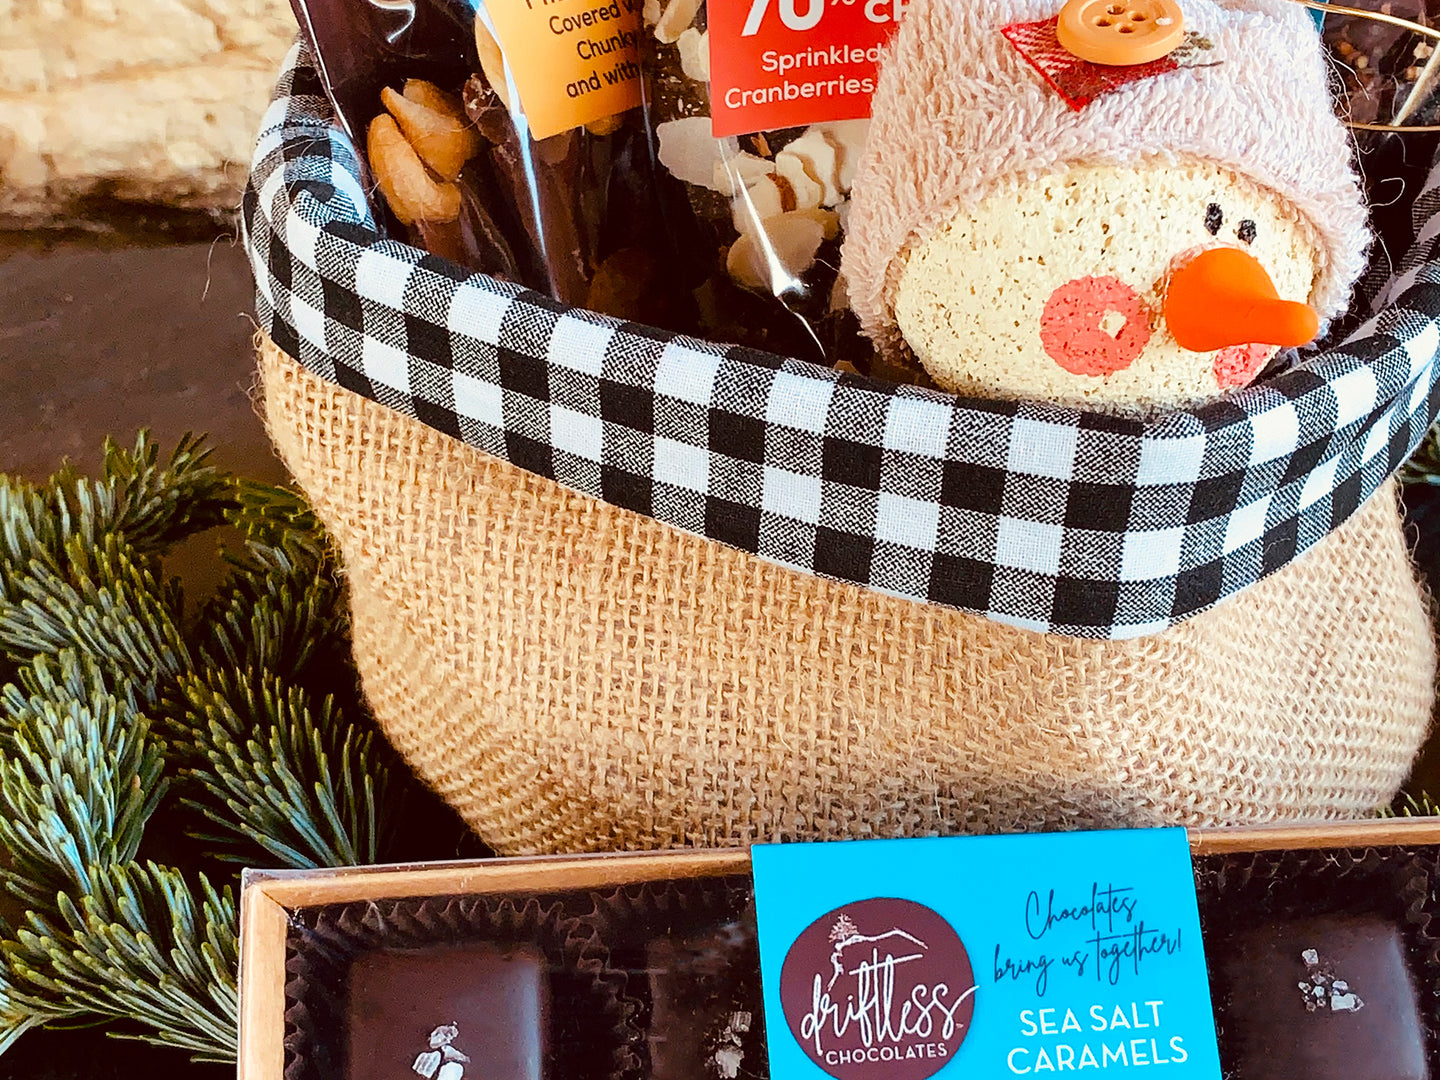 Driftless Chocolates delivers artisan-created handmade single origin chocolates to you!